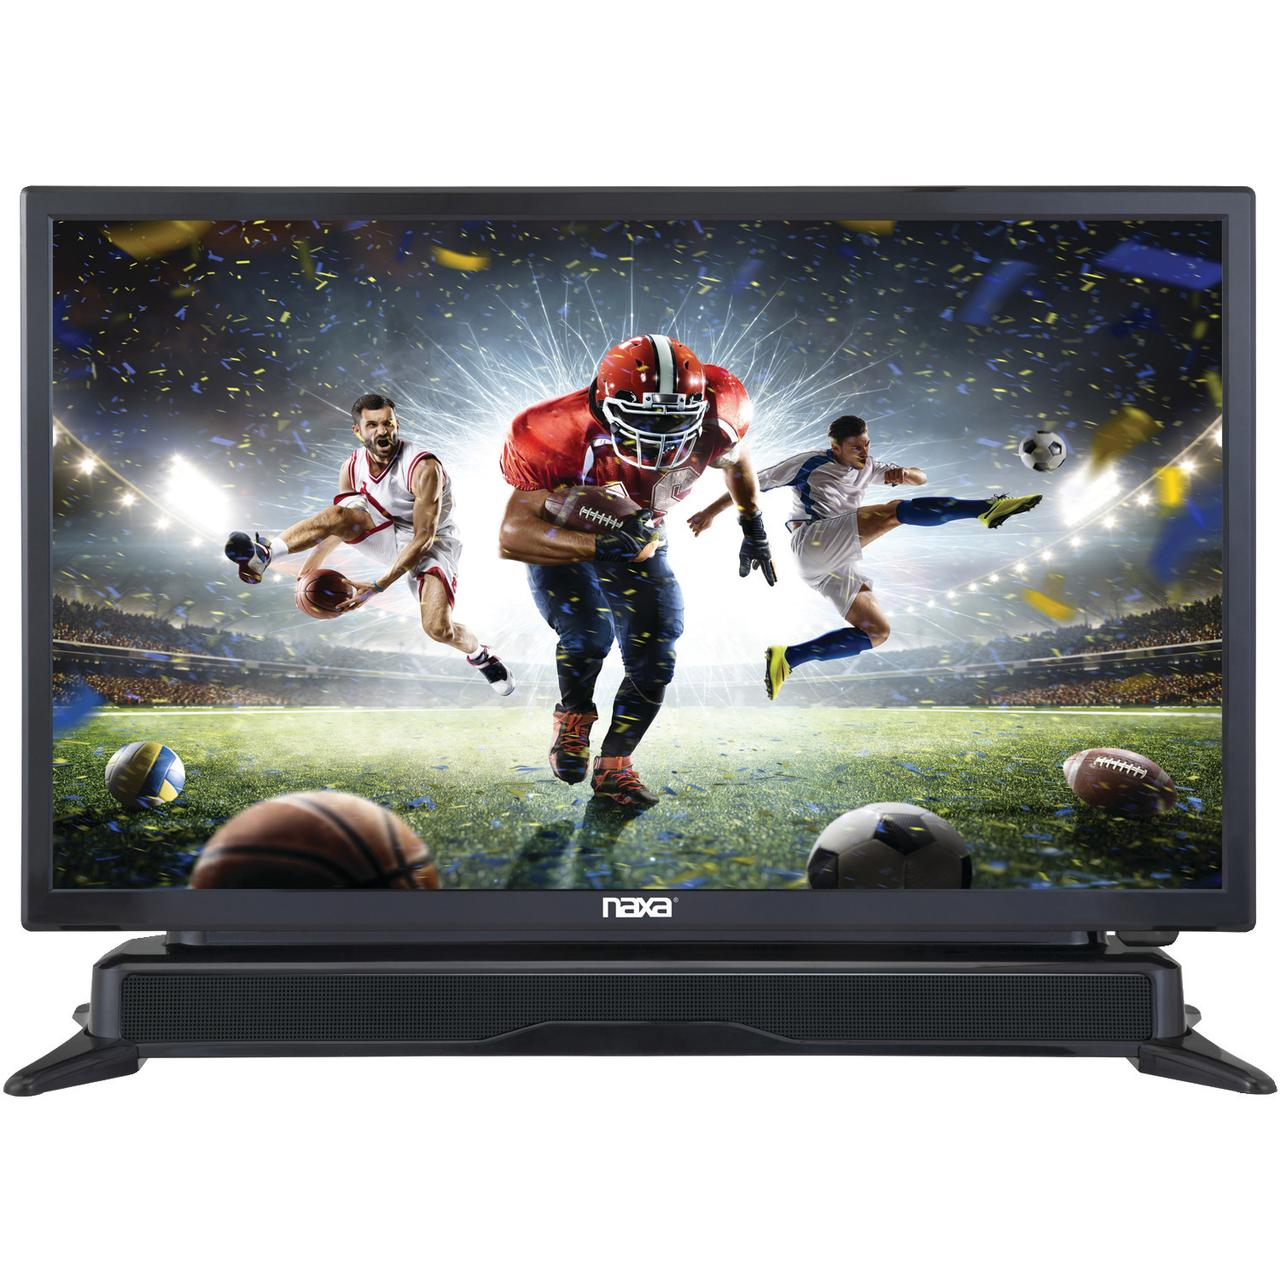 "NAXA Ntd-2460 24"" Class Led Tv With Dvd Player And Built-..."